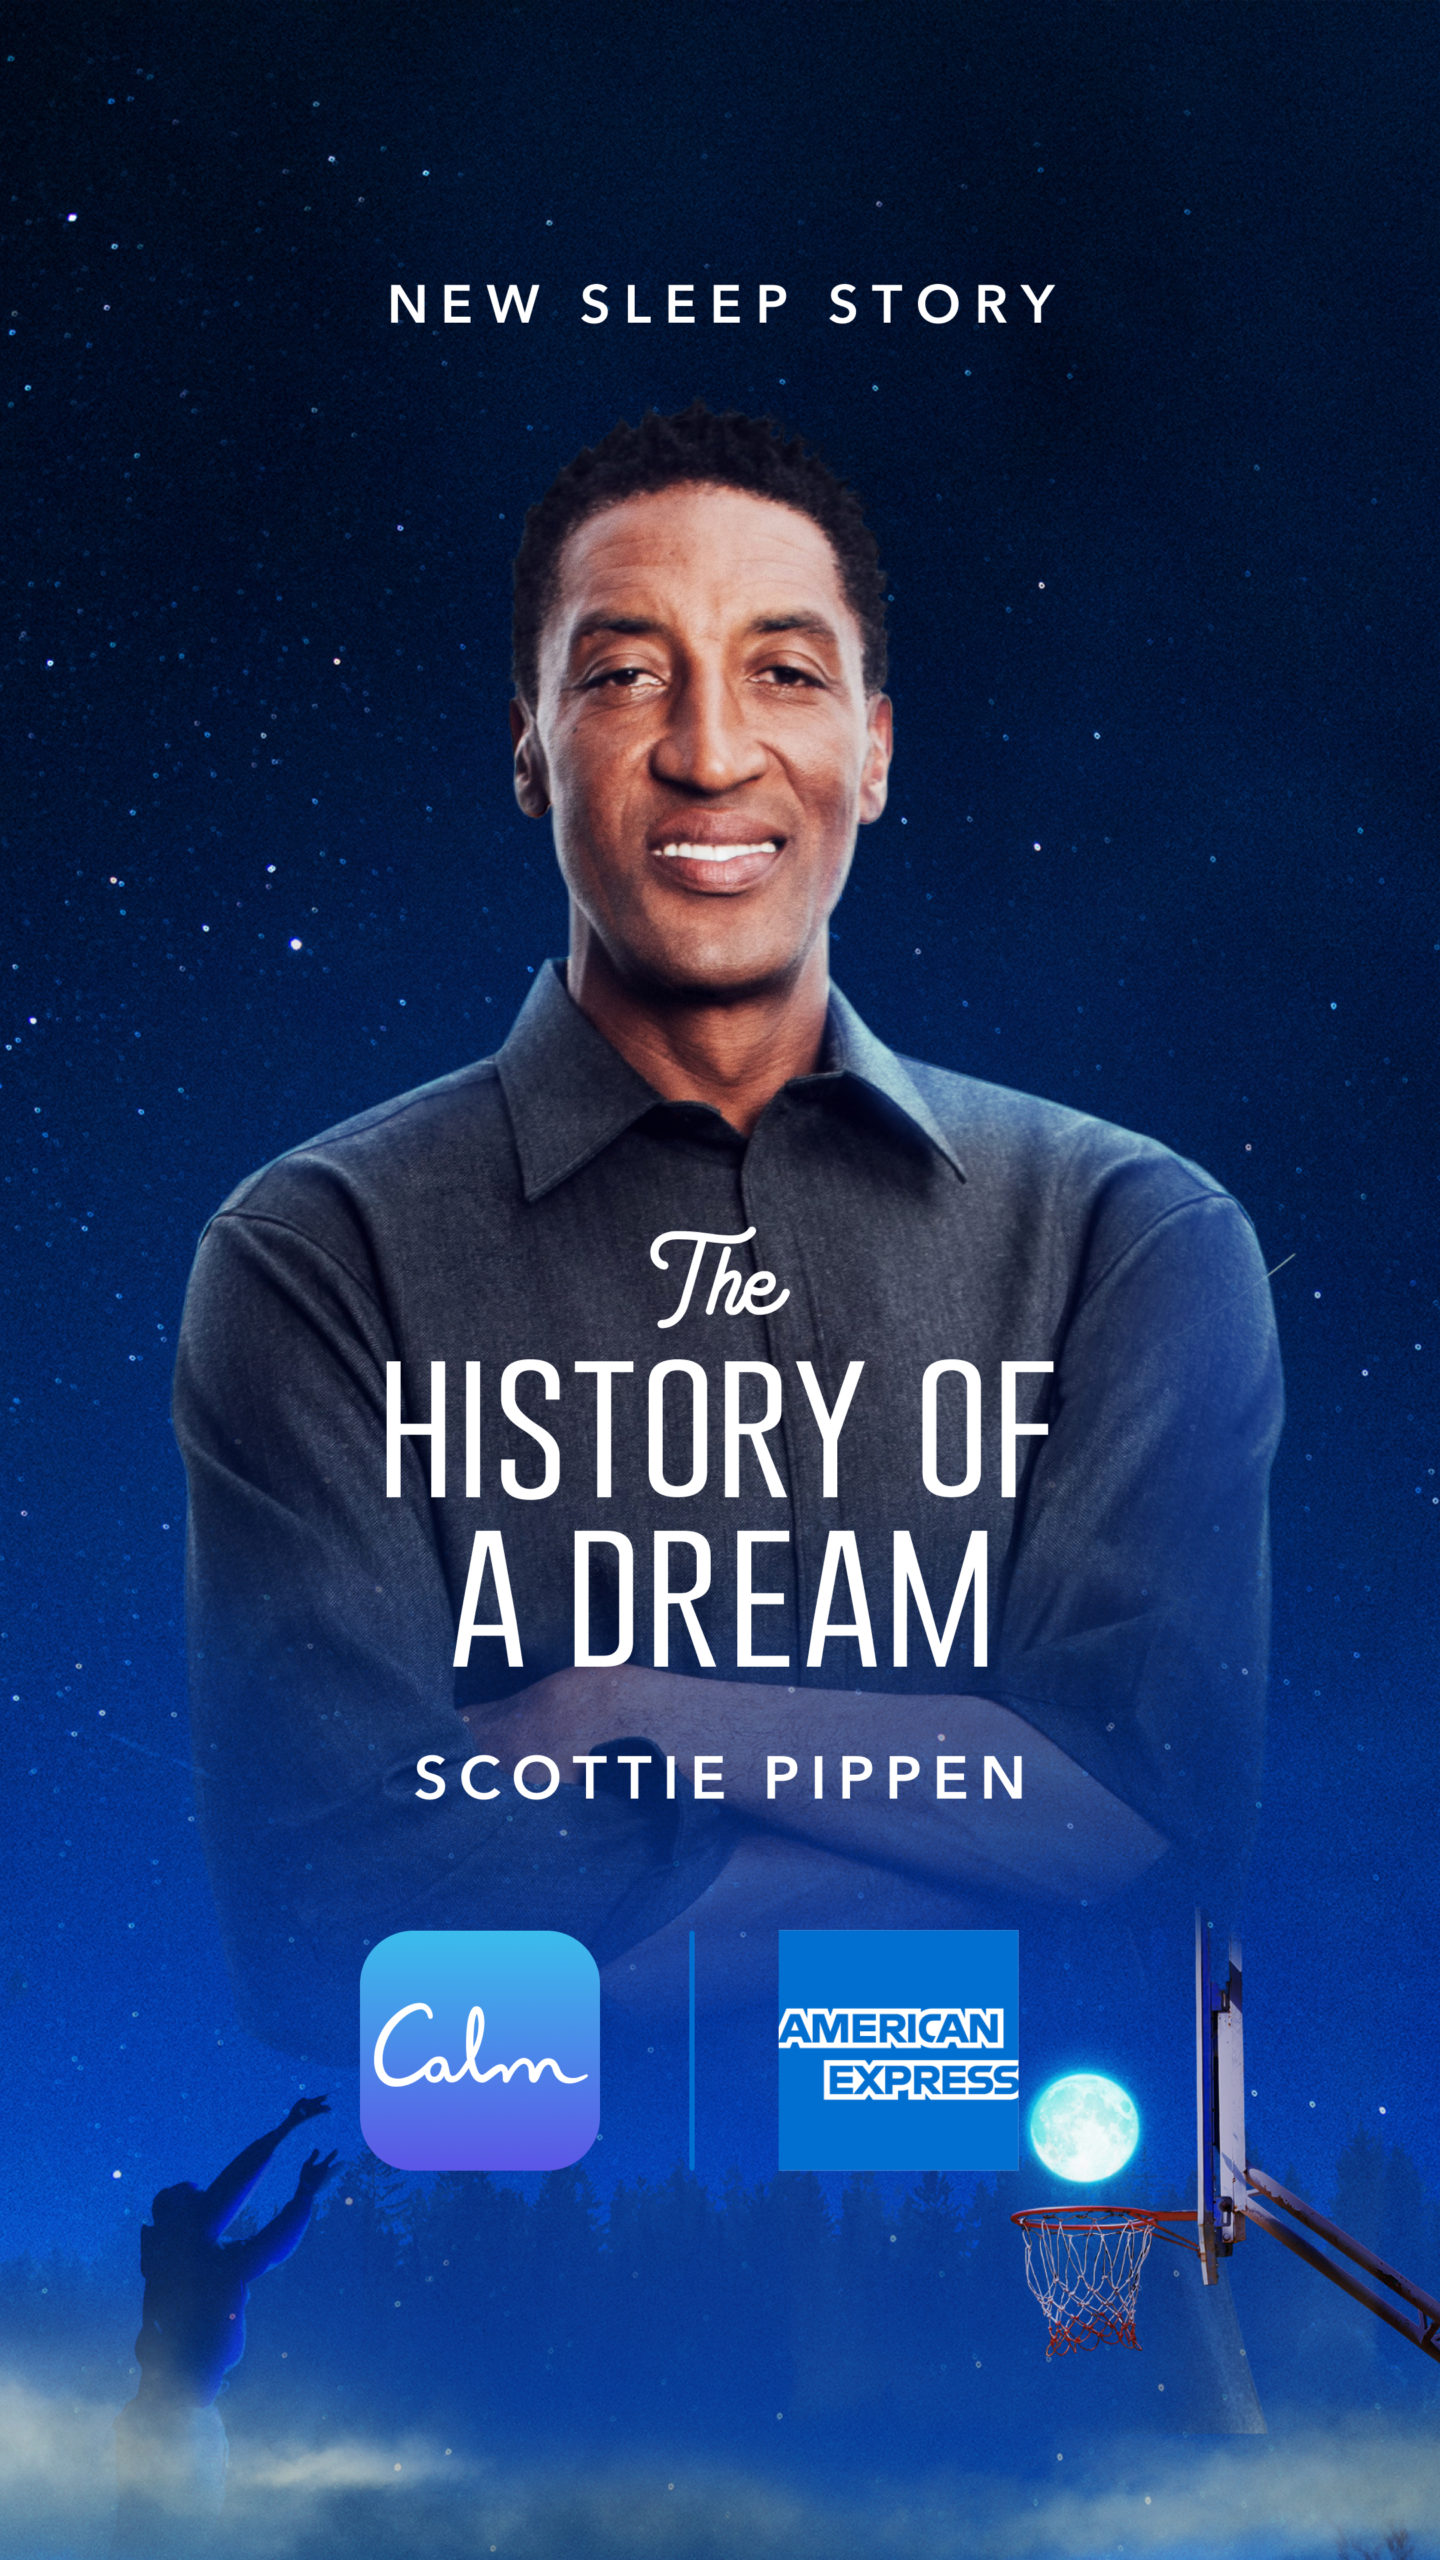 Scottie Pippen Debuts New Sleep Story with Calm & American Express